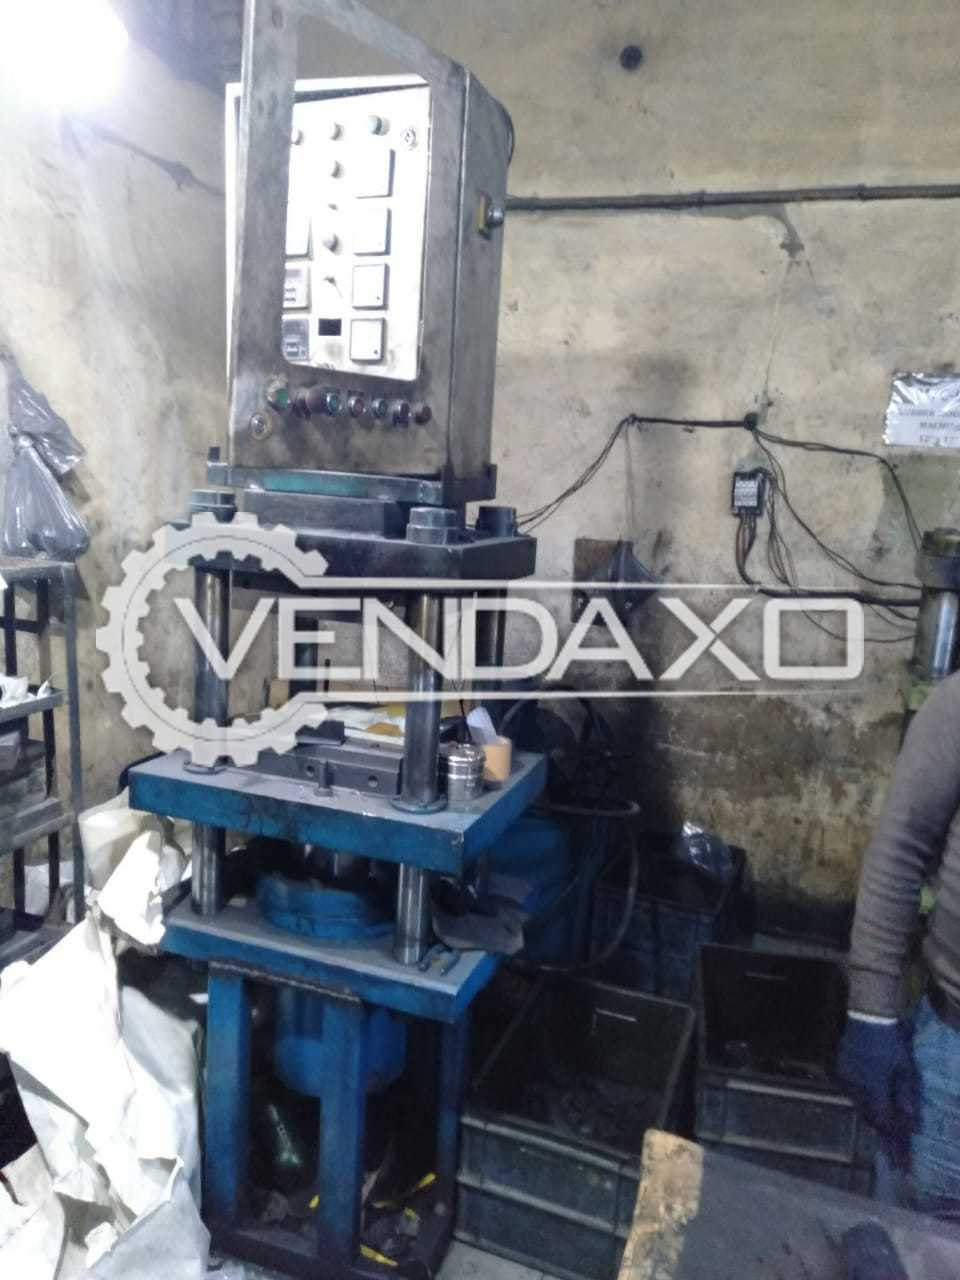 Rubber Hydraulic Press Machine - 14 X 14 Inch